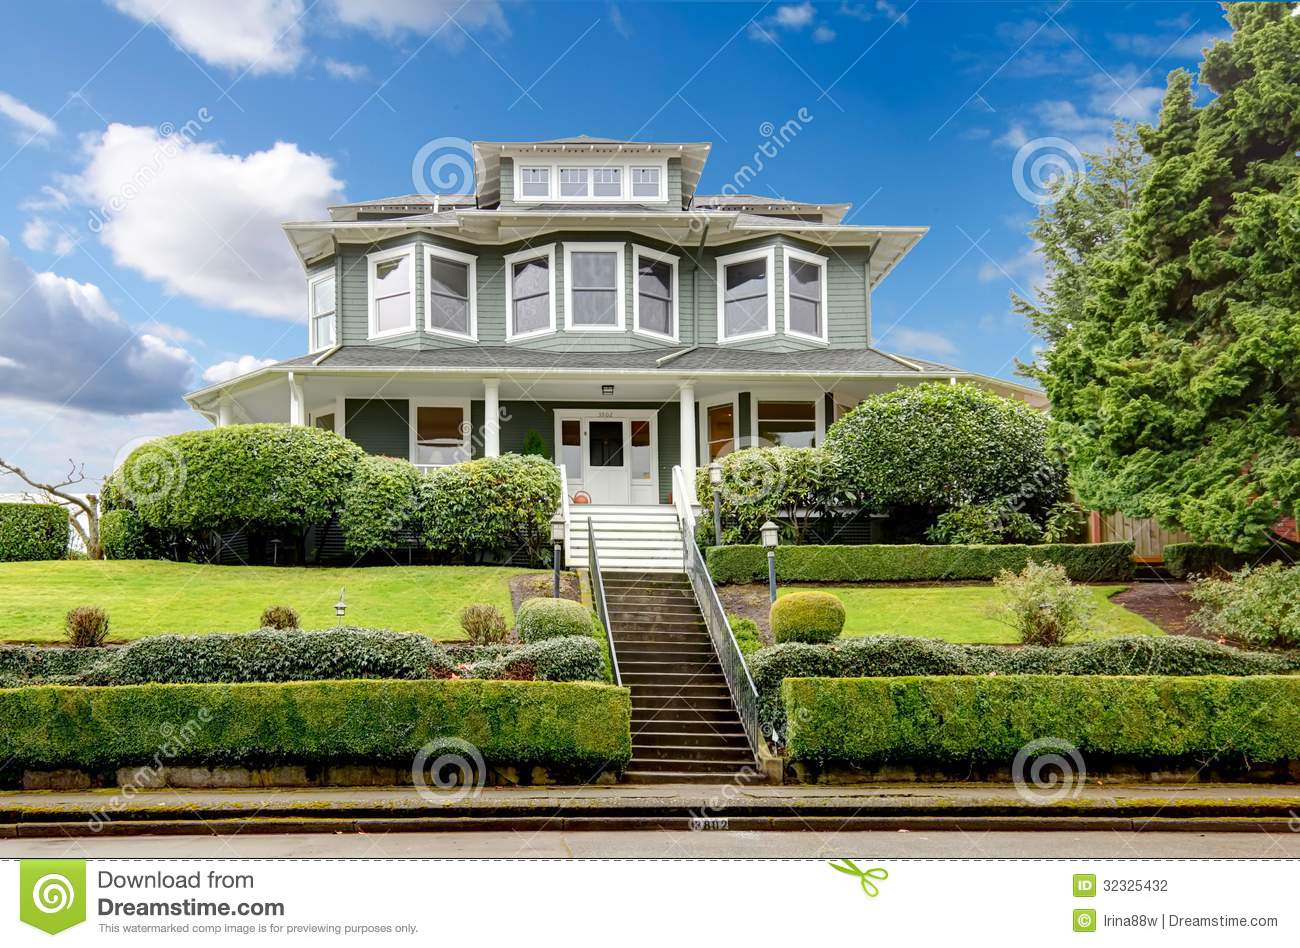 Large luxury green craftsman classic american house for Big houses in america